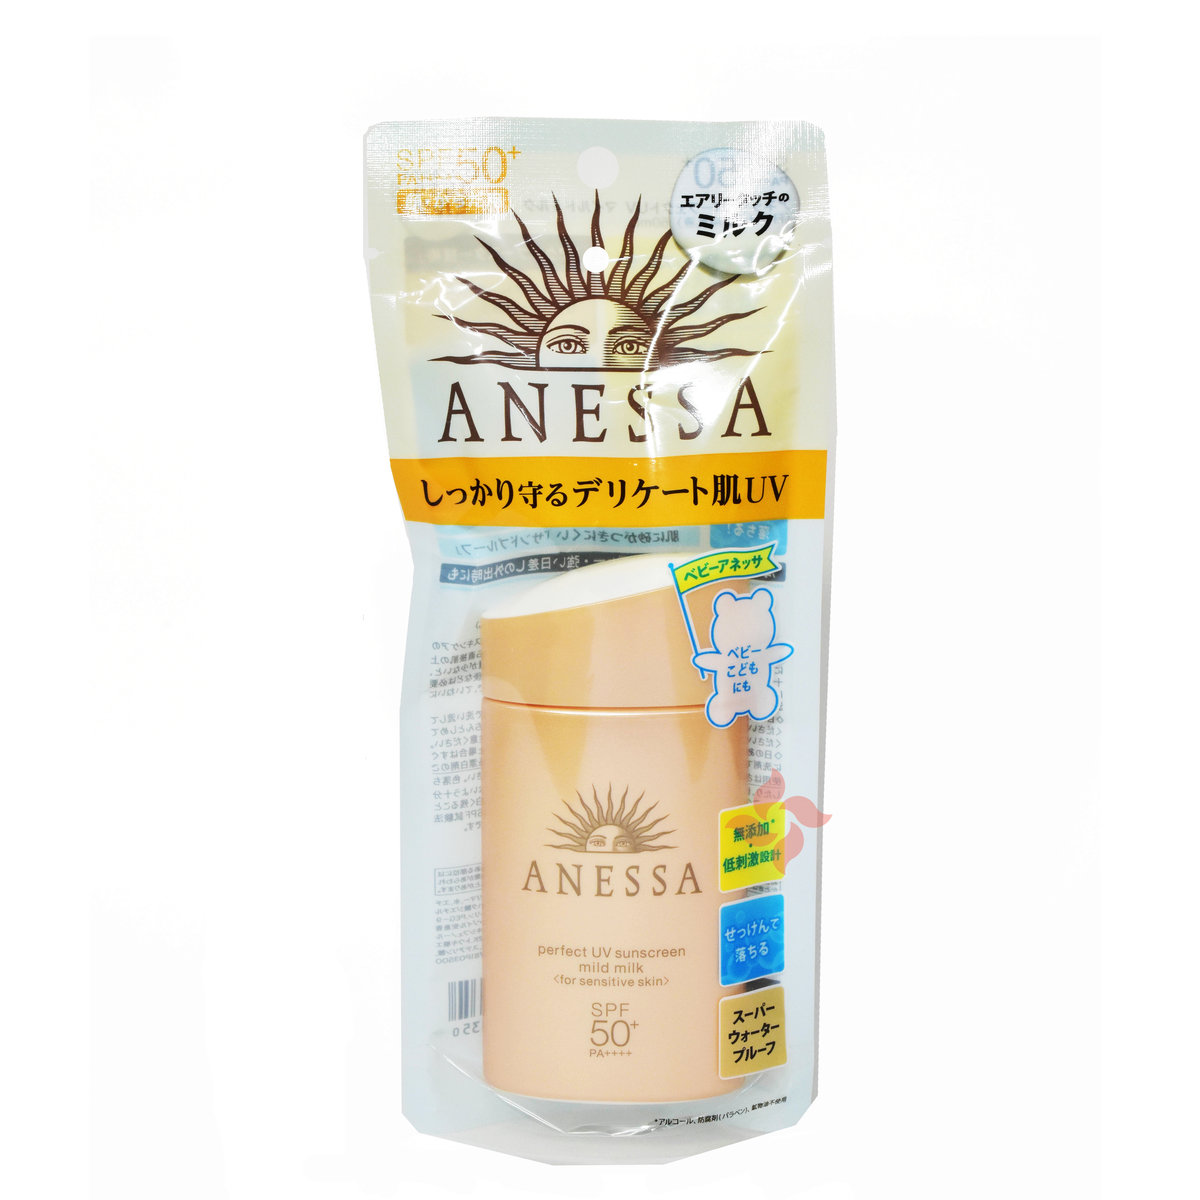 ANESSA Perfect UV mild milk SPF50 + / PA ++++ 60g (light gold)(2018 Edition) (4901872083350)